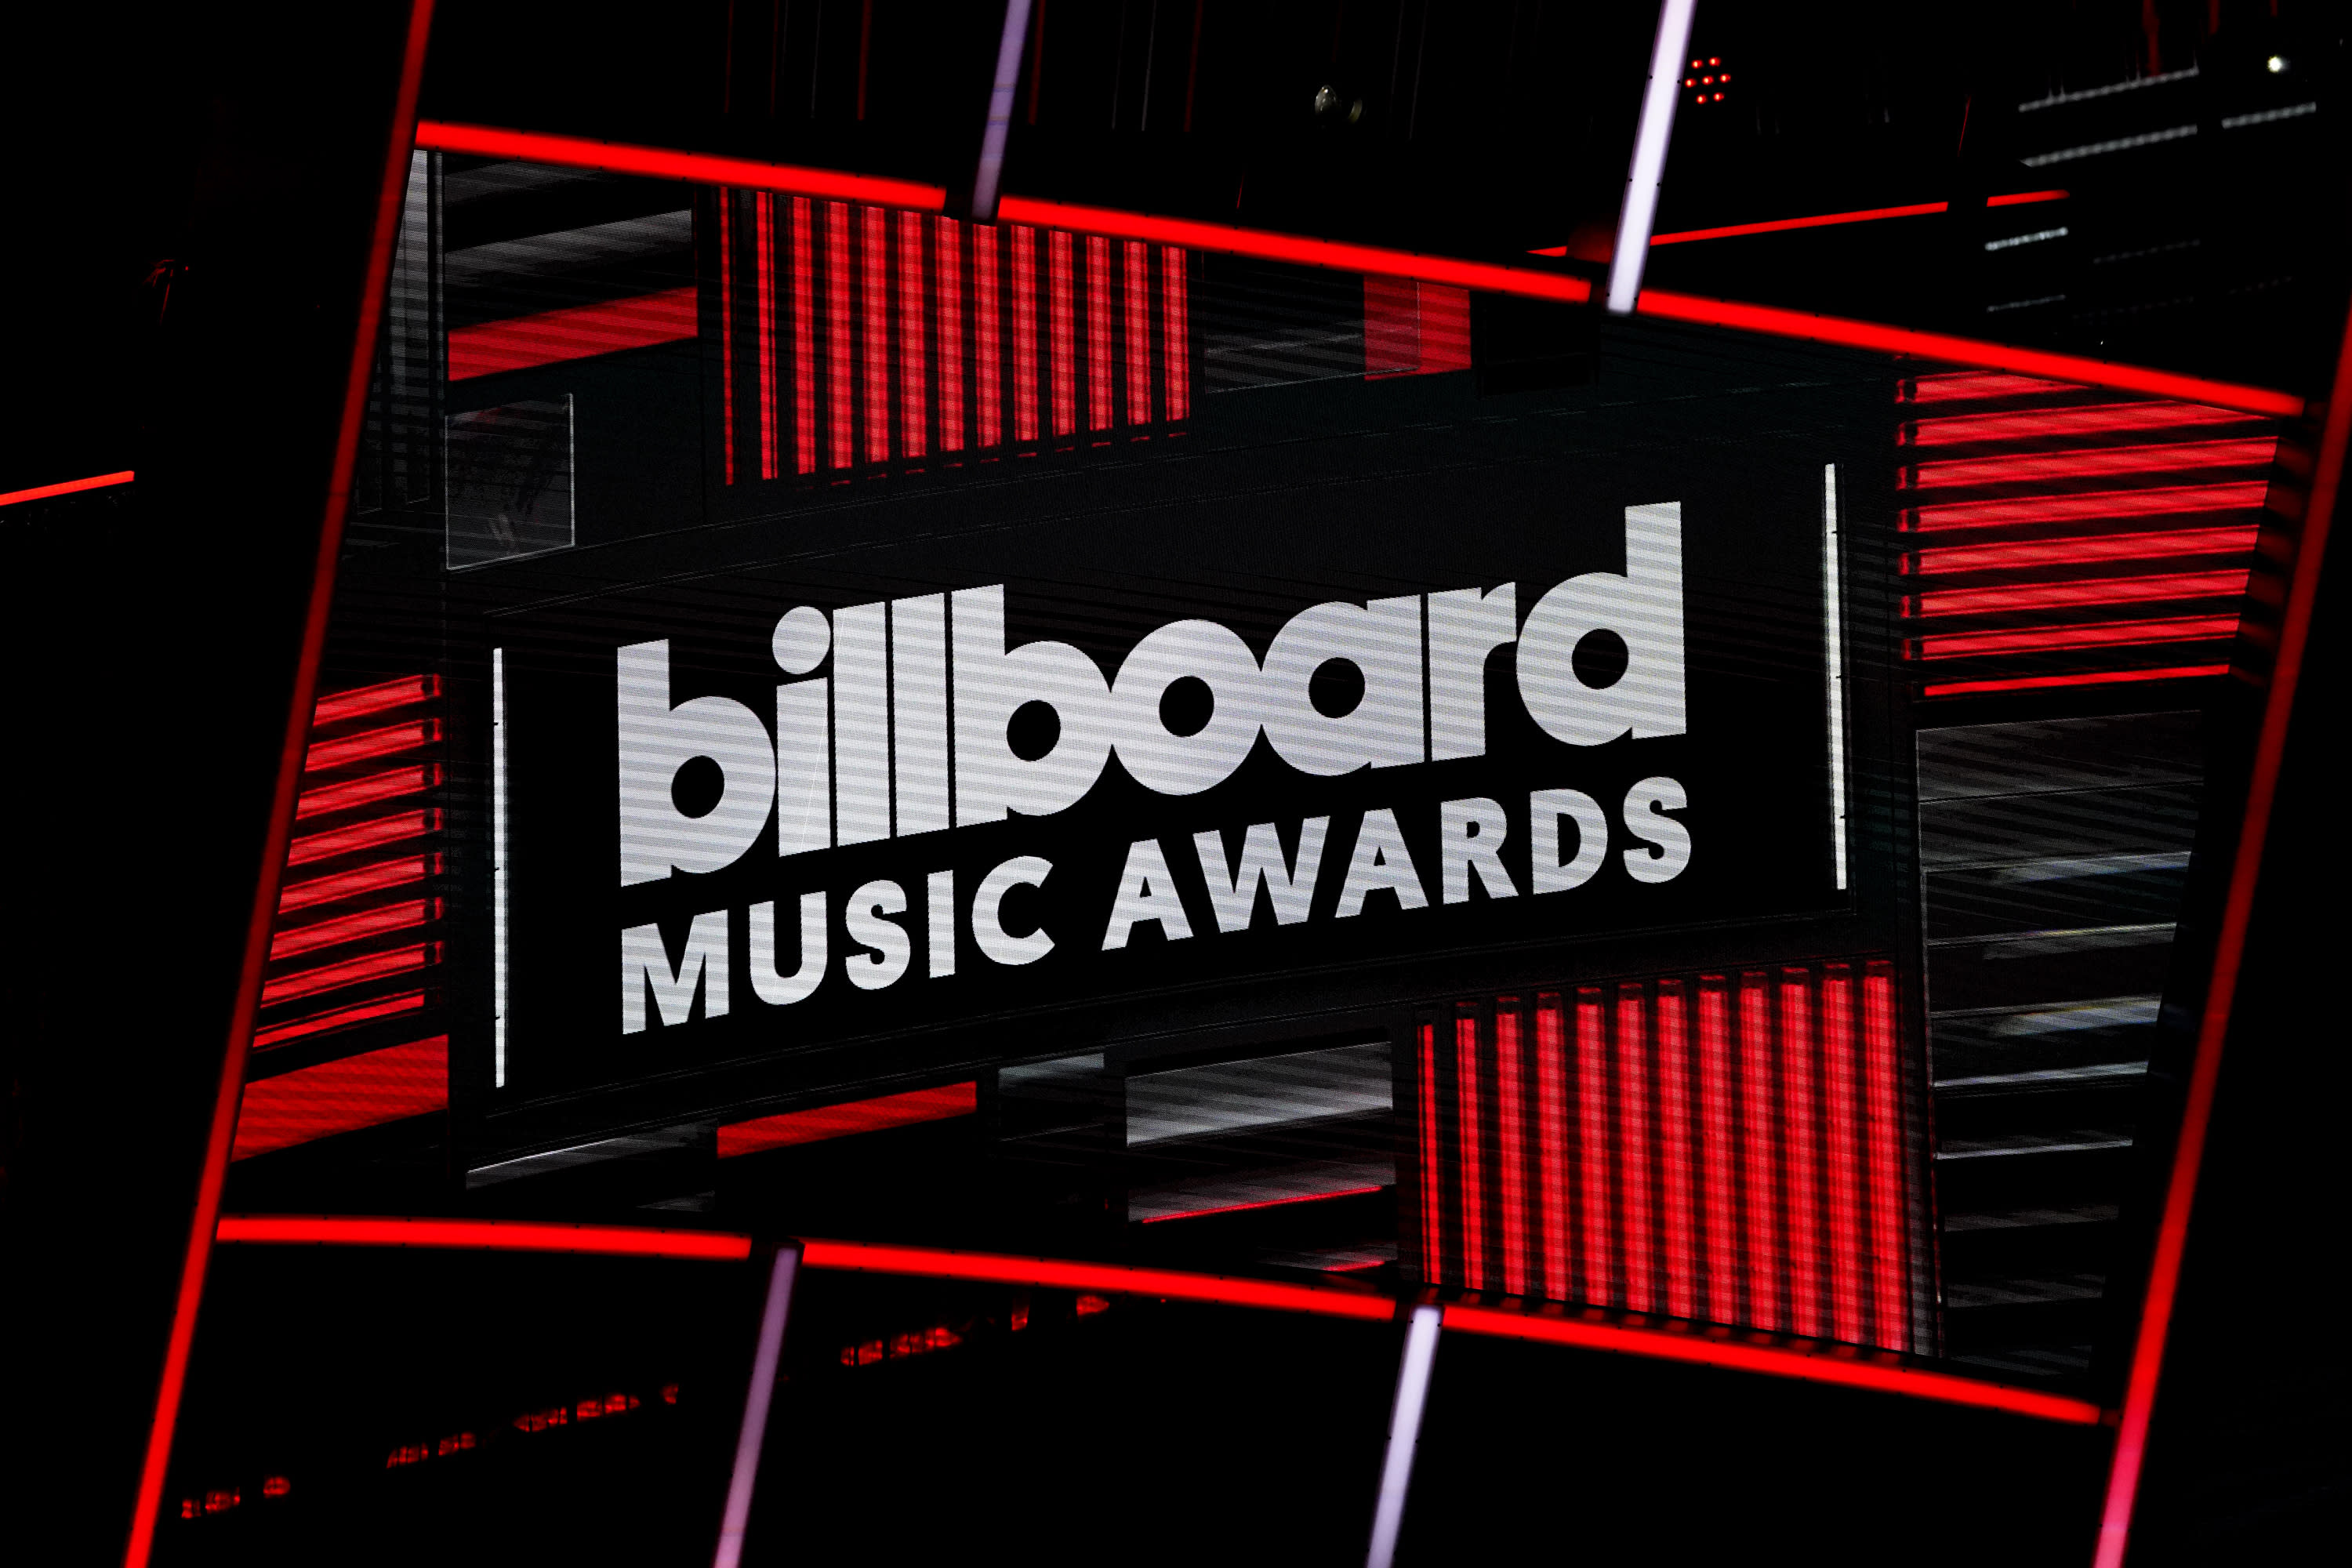 Billboard Music Awards 2020: Top show moments